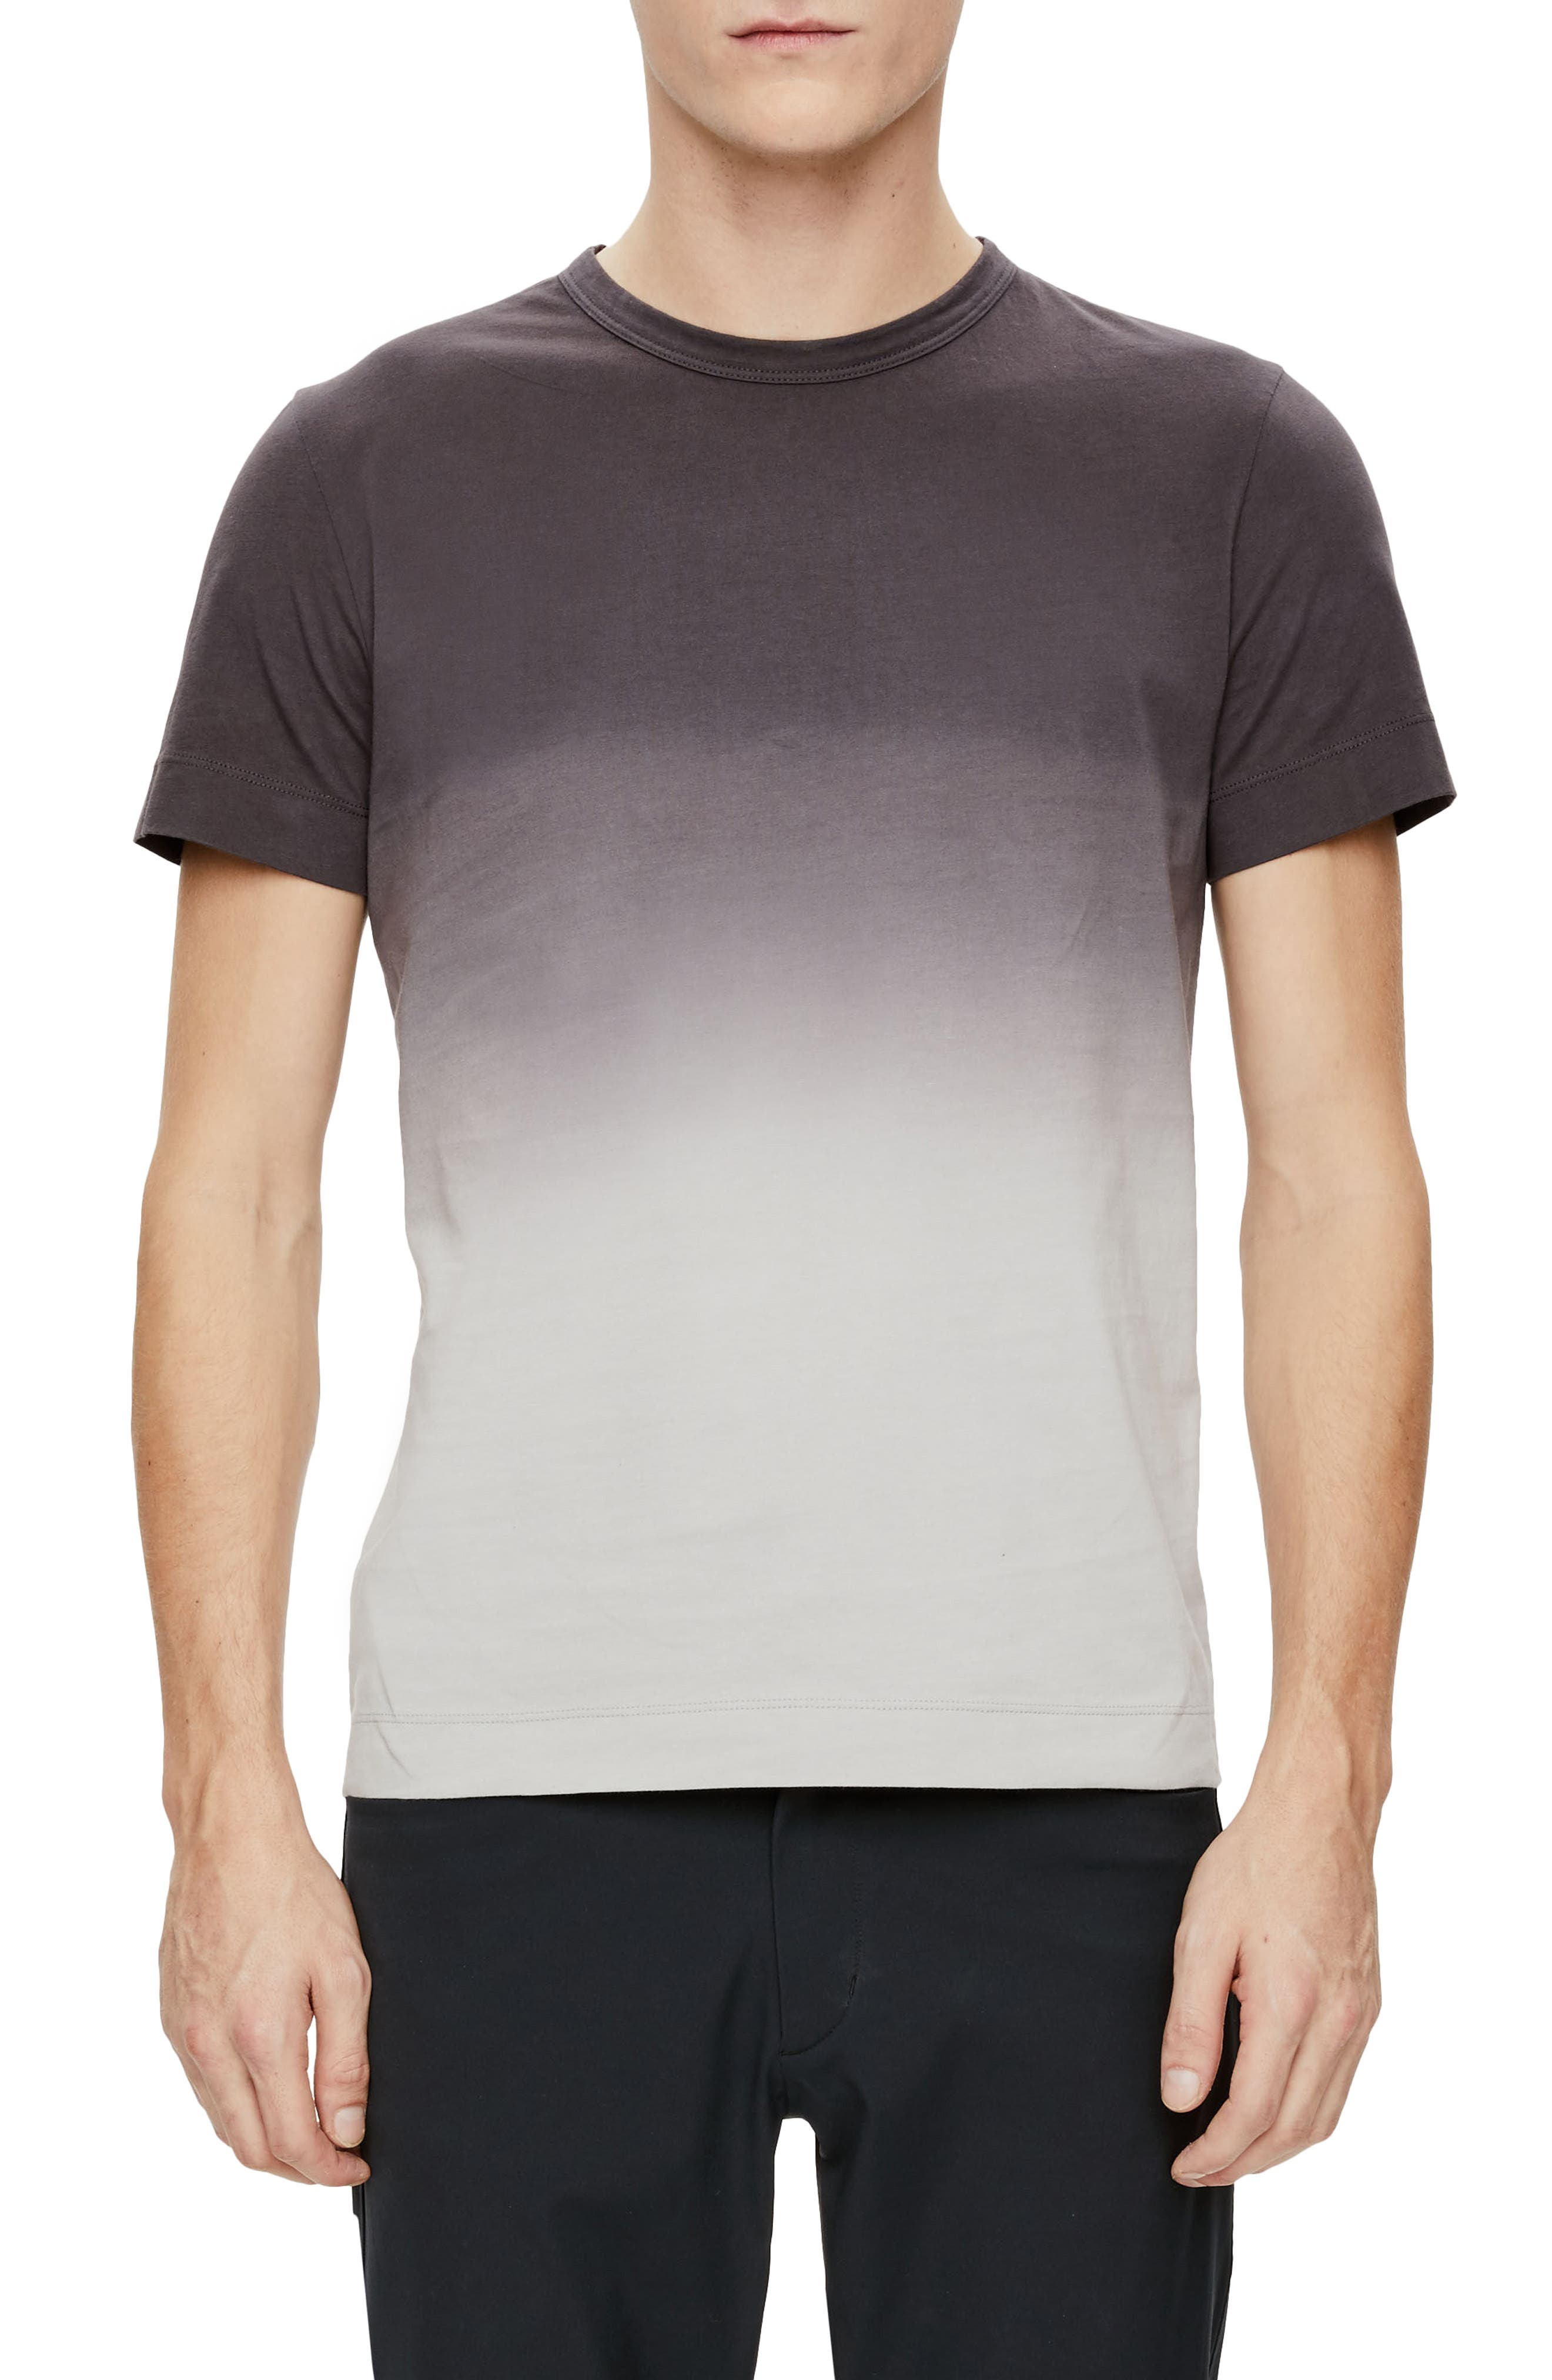 Main Image - Theory Gaskell Dip Dye Ombré T-Shirt